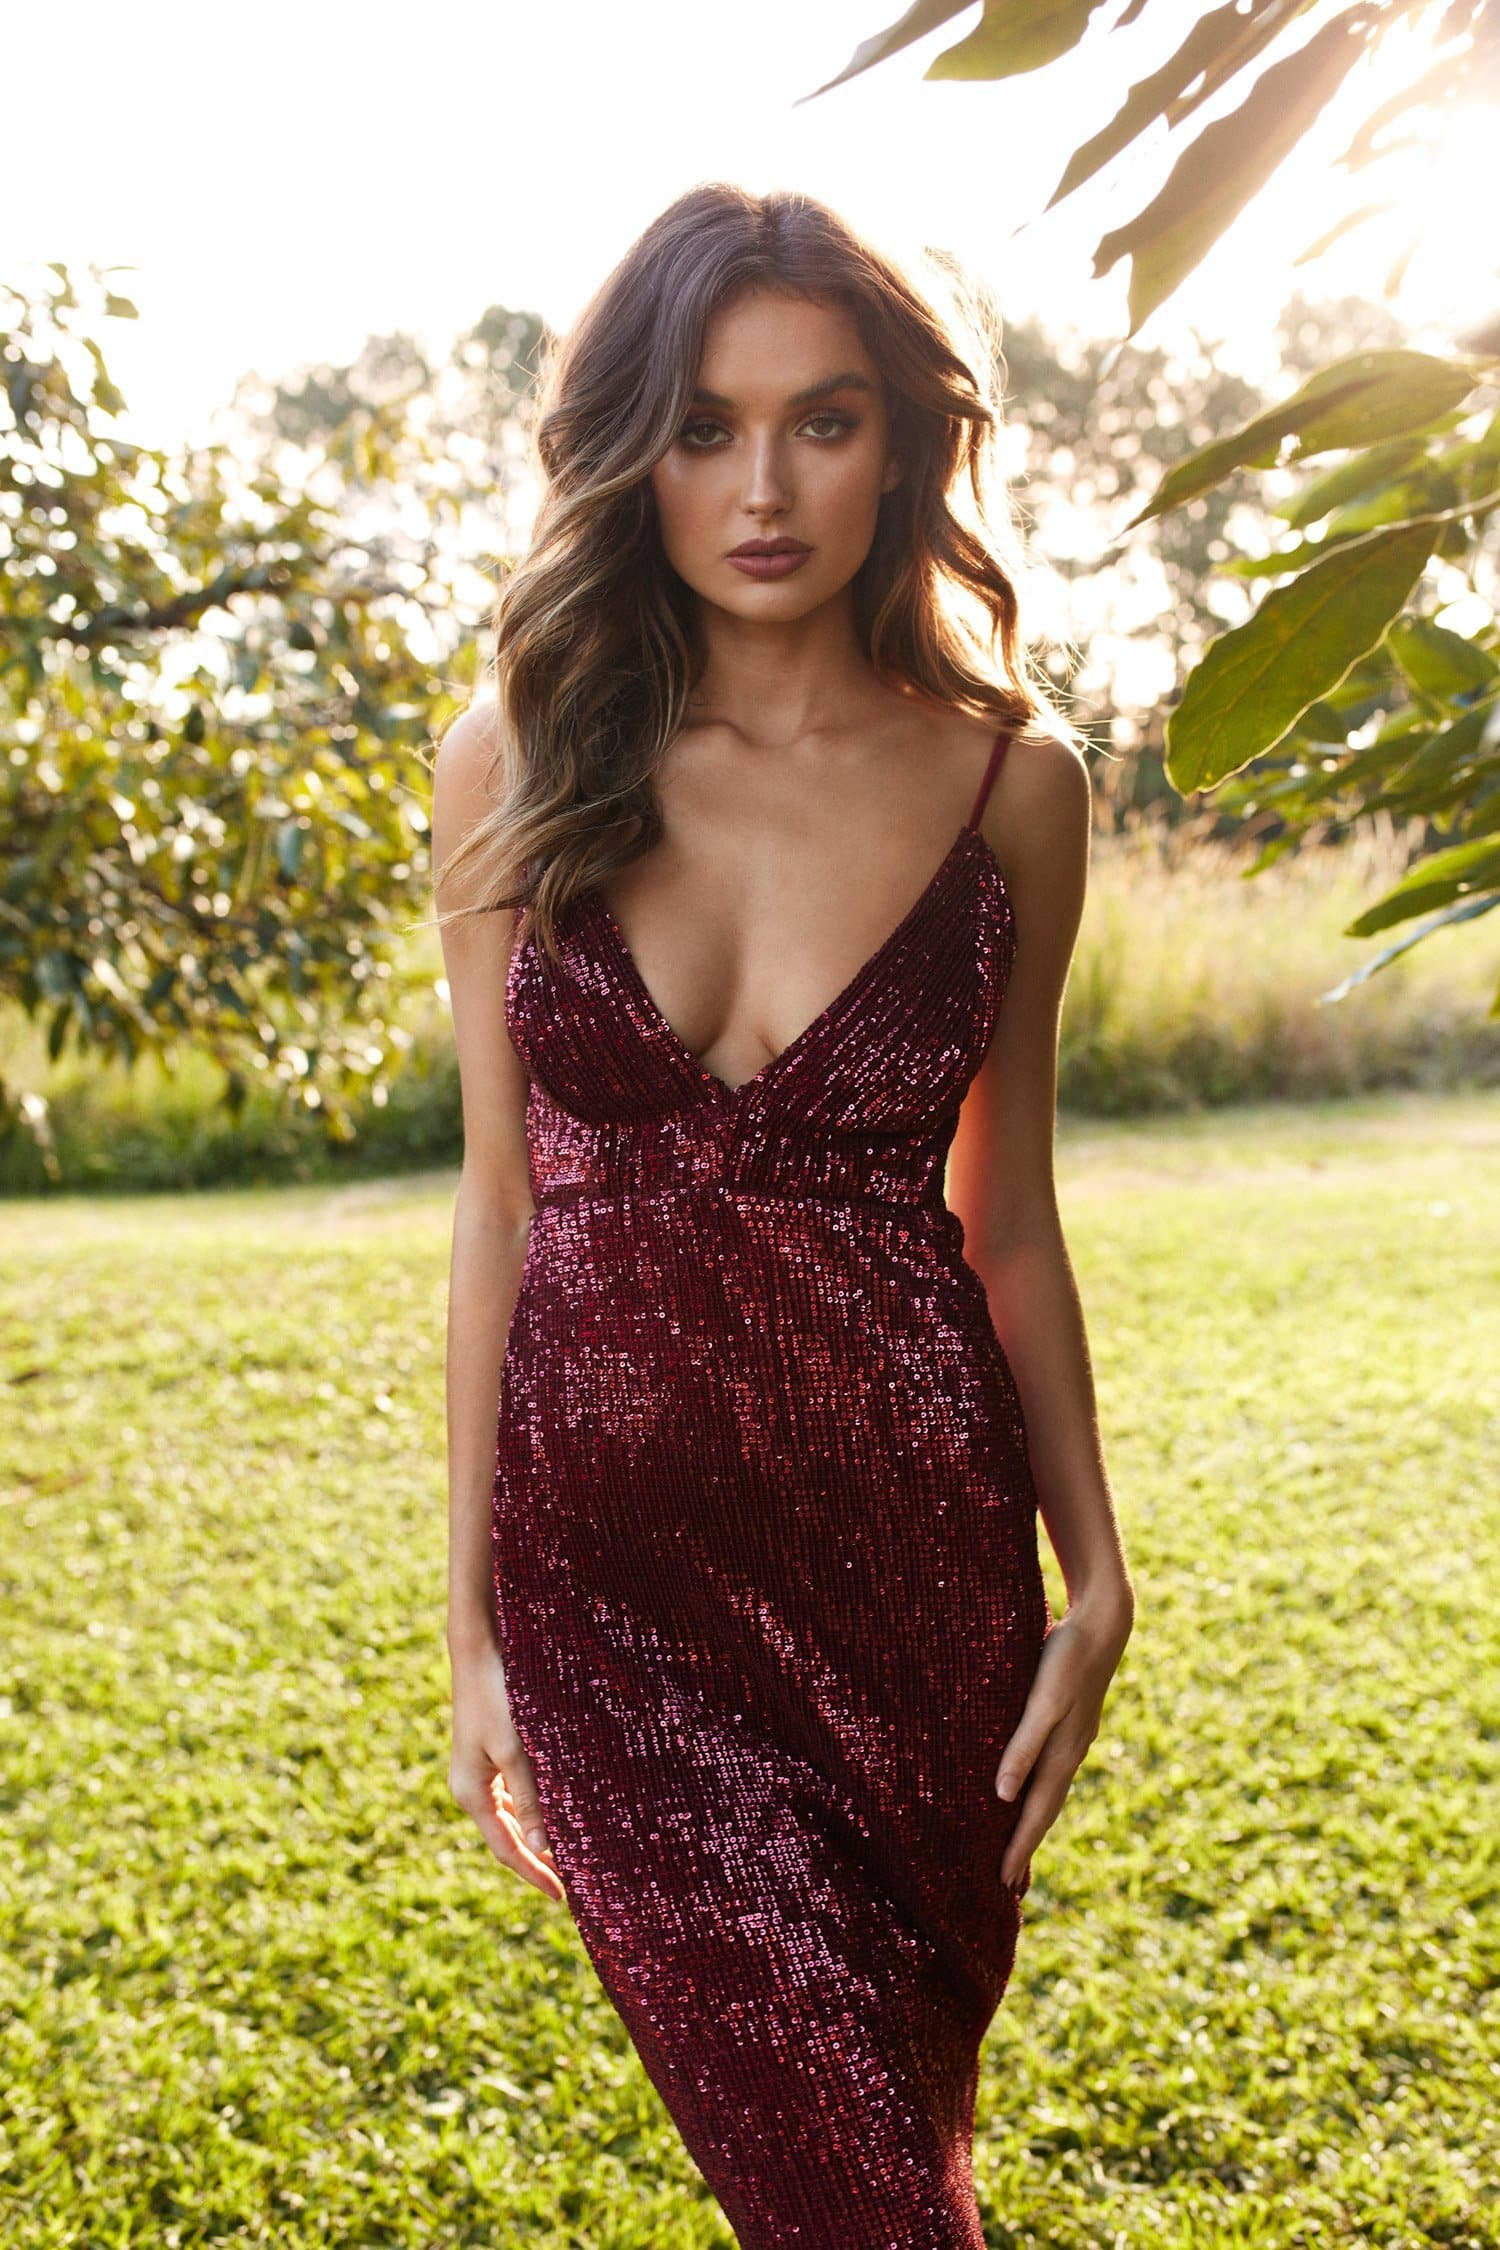 Cynthia Sparkling Mermaid Gown - Burgundy Sequins